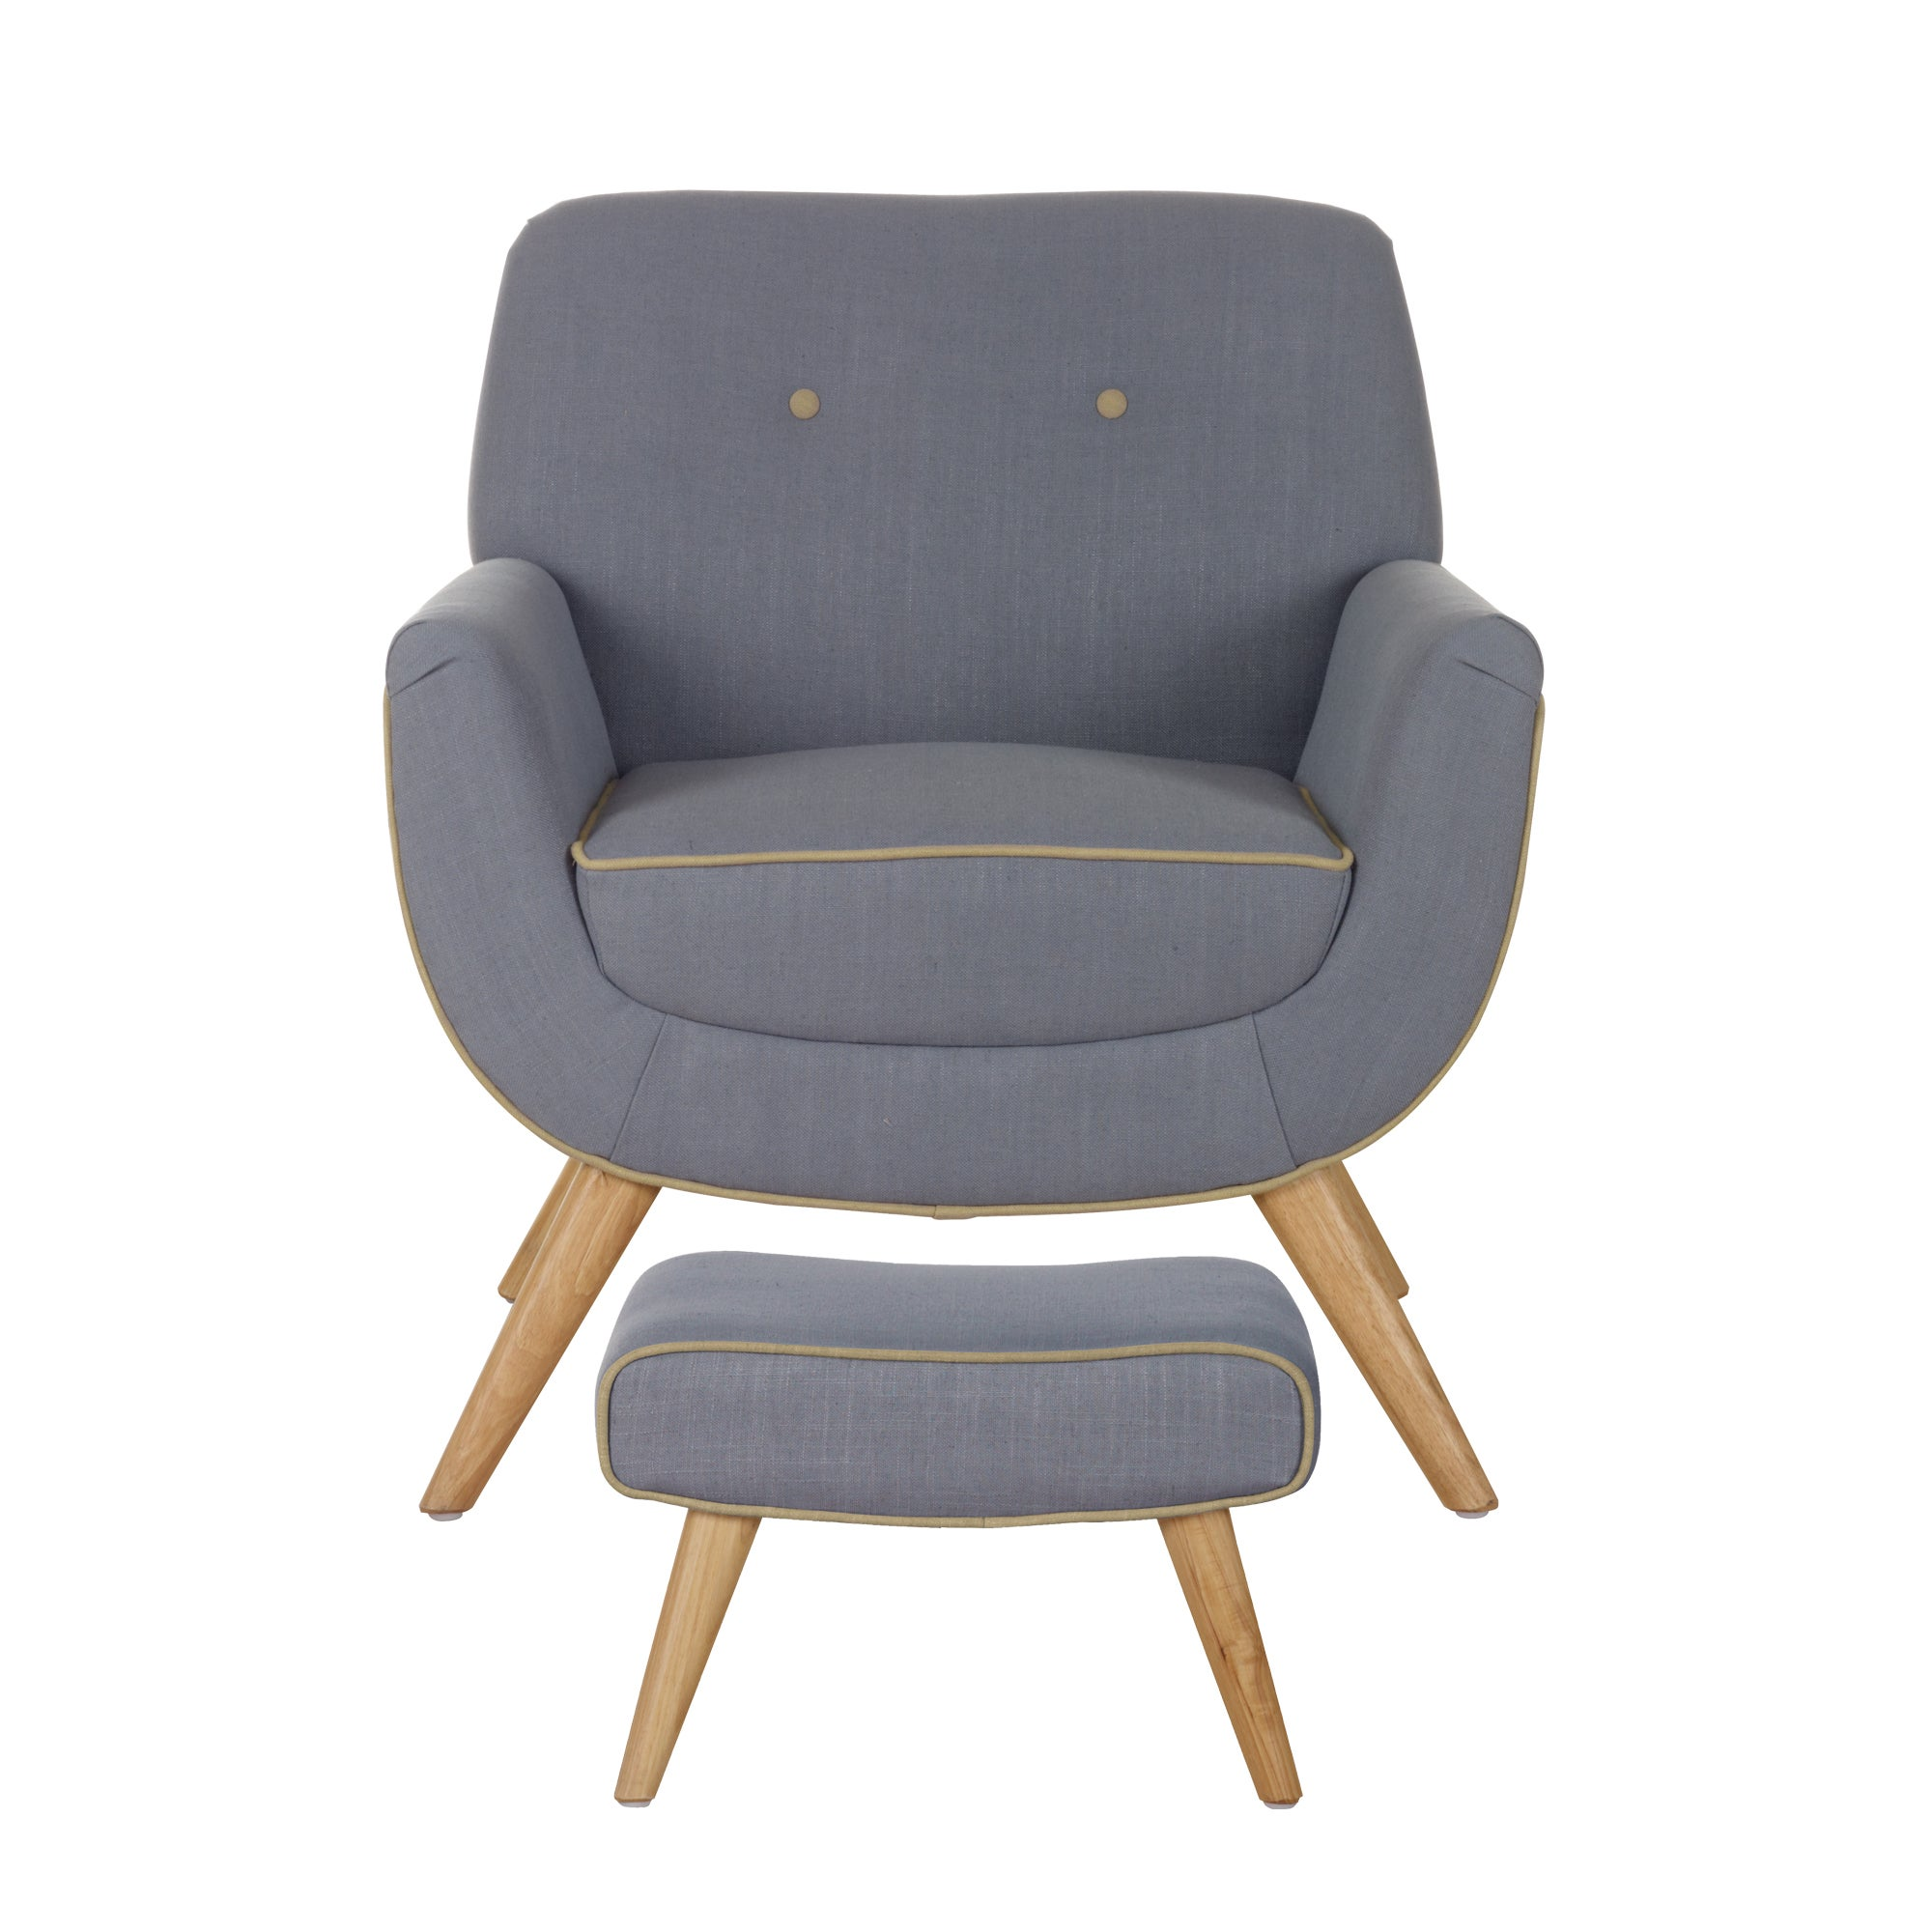 Skandi Charcoal Armchair and Footstool